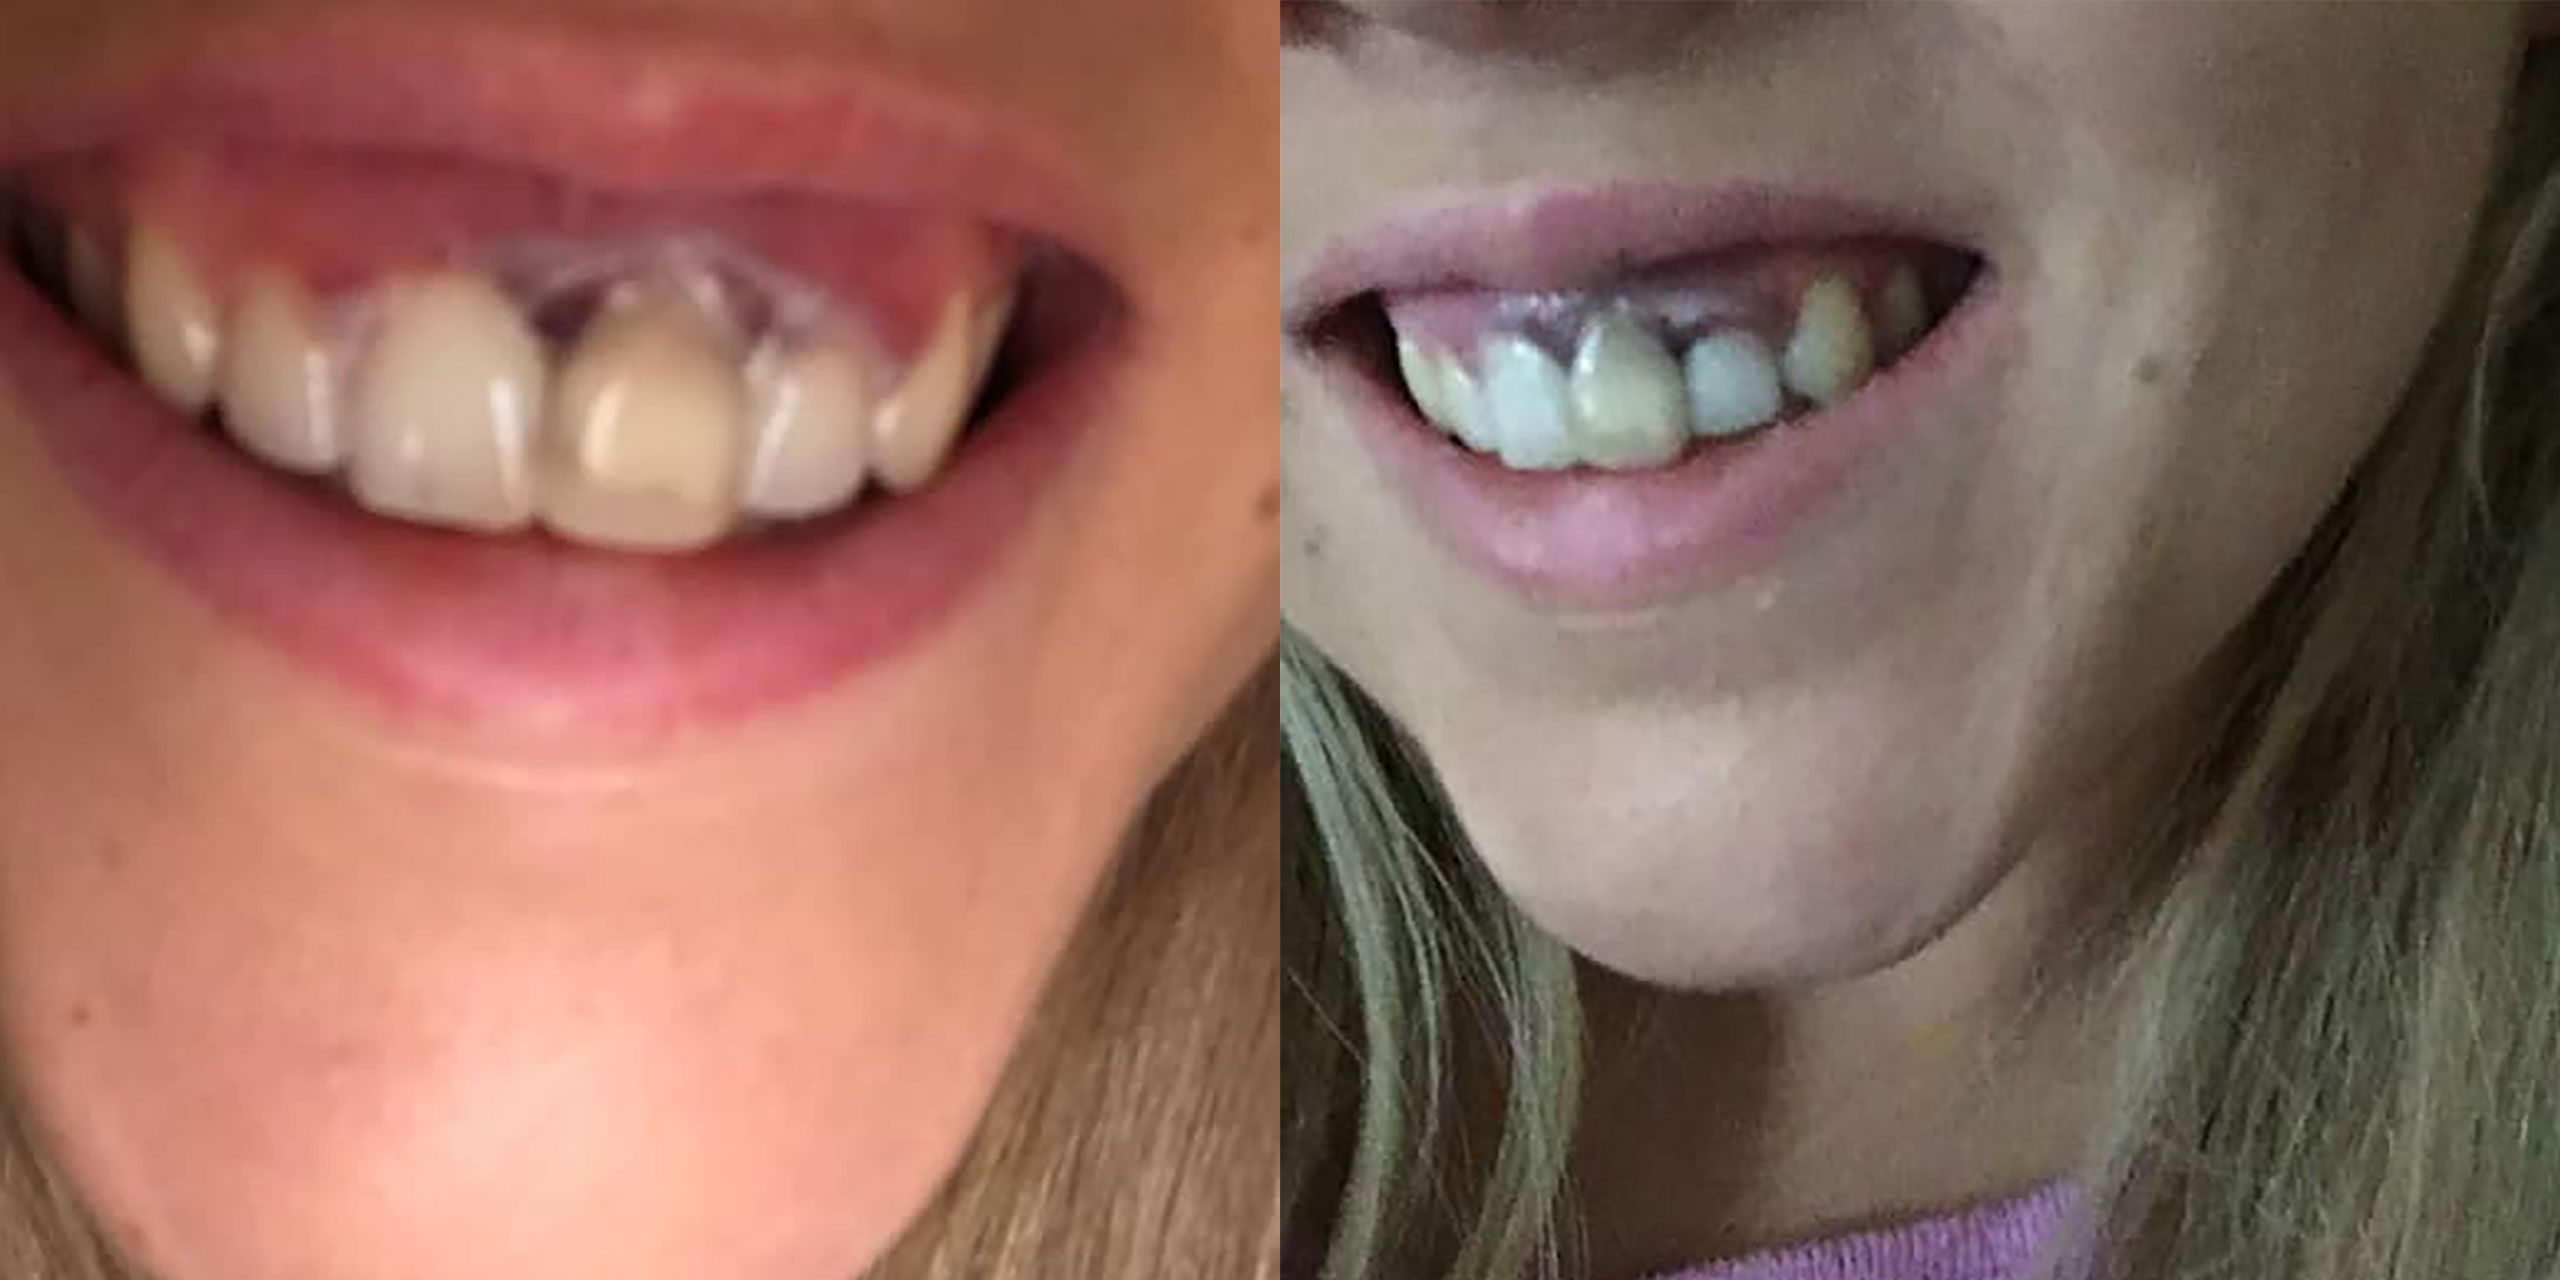 Woman Shares Photos Of Bad Teeth Whitening Job That Burned Her Gums